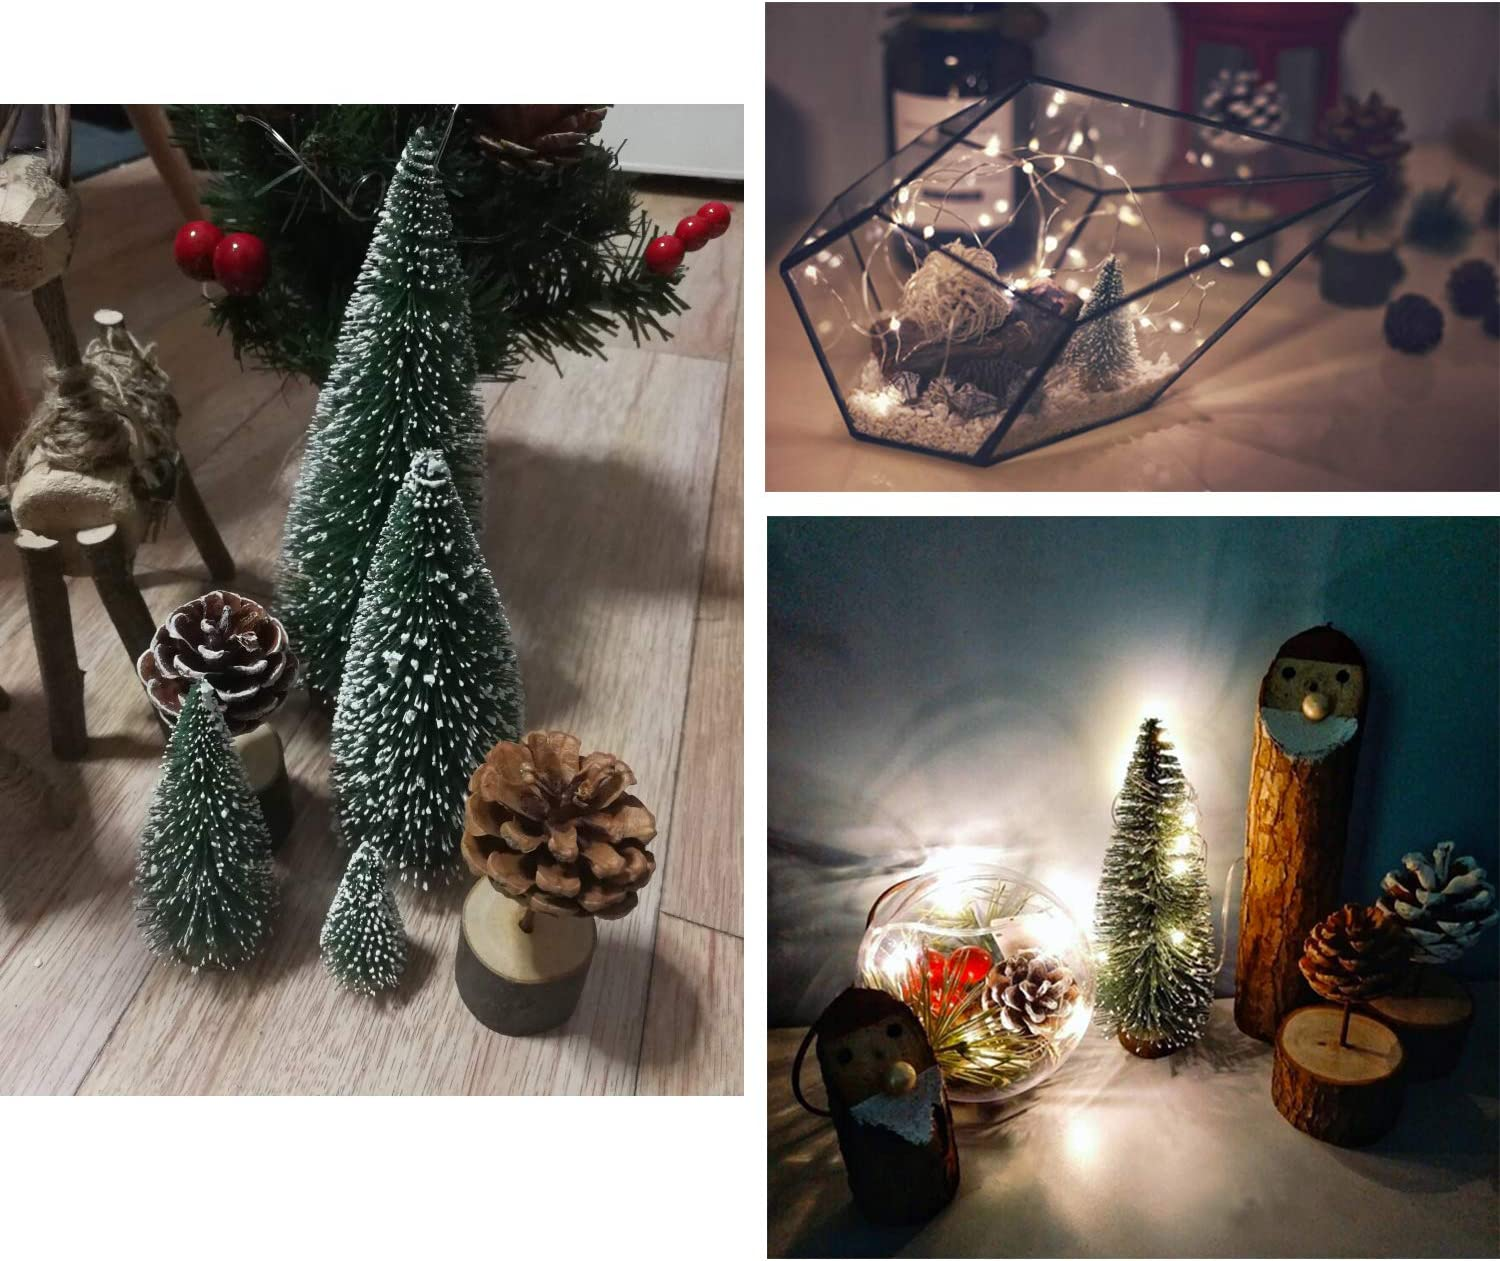 Efivs Arts 37pcs Mini Snow Sisal Christmas Trees Bottle Brush Trees Plastic Winter Snow Ornaments Tabletop Trees Wooden Bases for Christmas Party Decoration Ornament DIY Craft